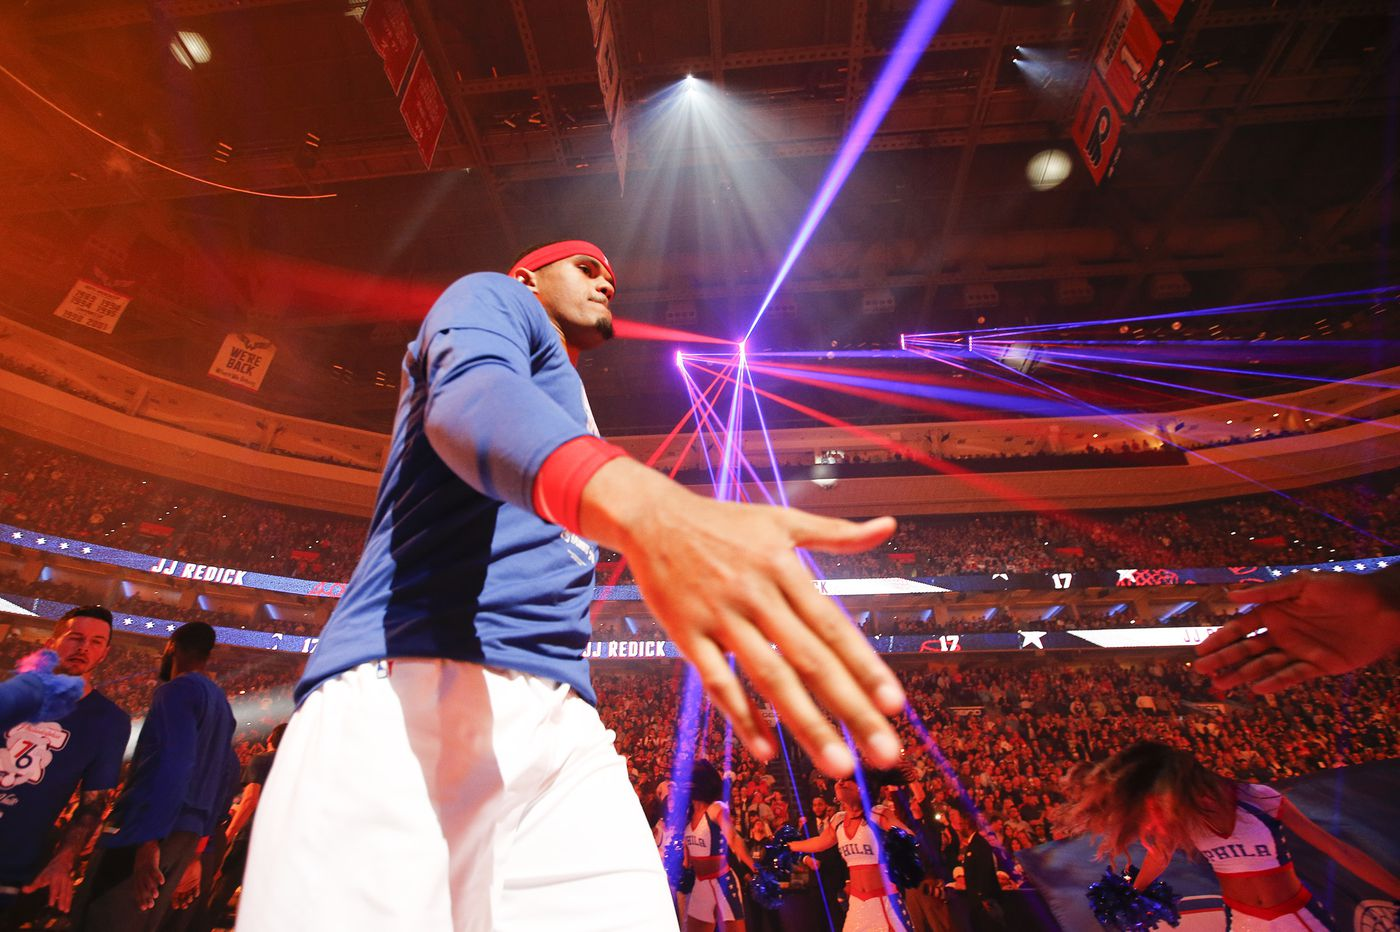 Sixers free agent Tobias Harris' suitors include Kings, Mavericks, Jazz, Nets, and Pacers, according to league sources